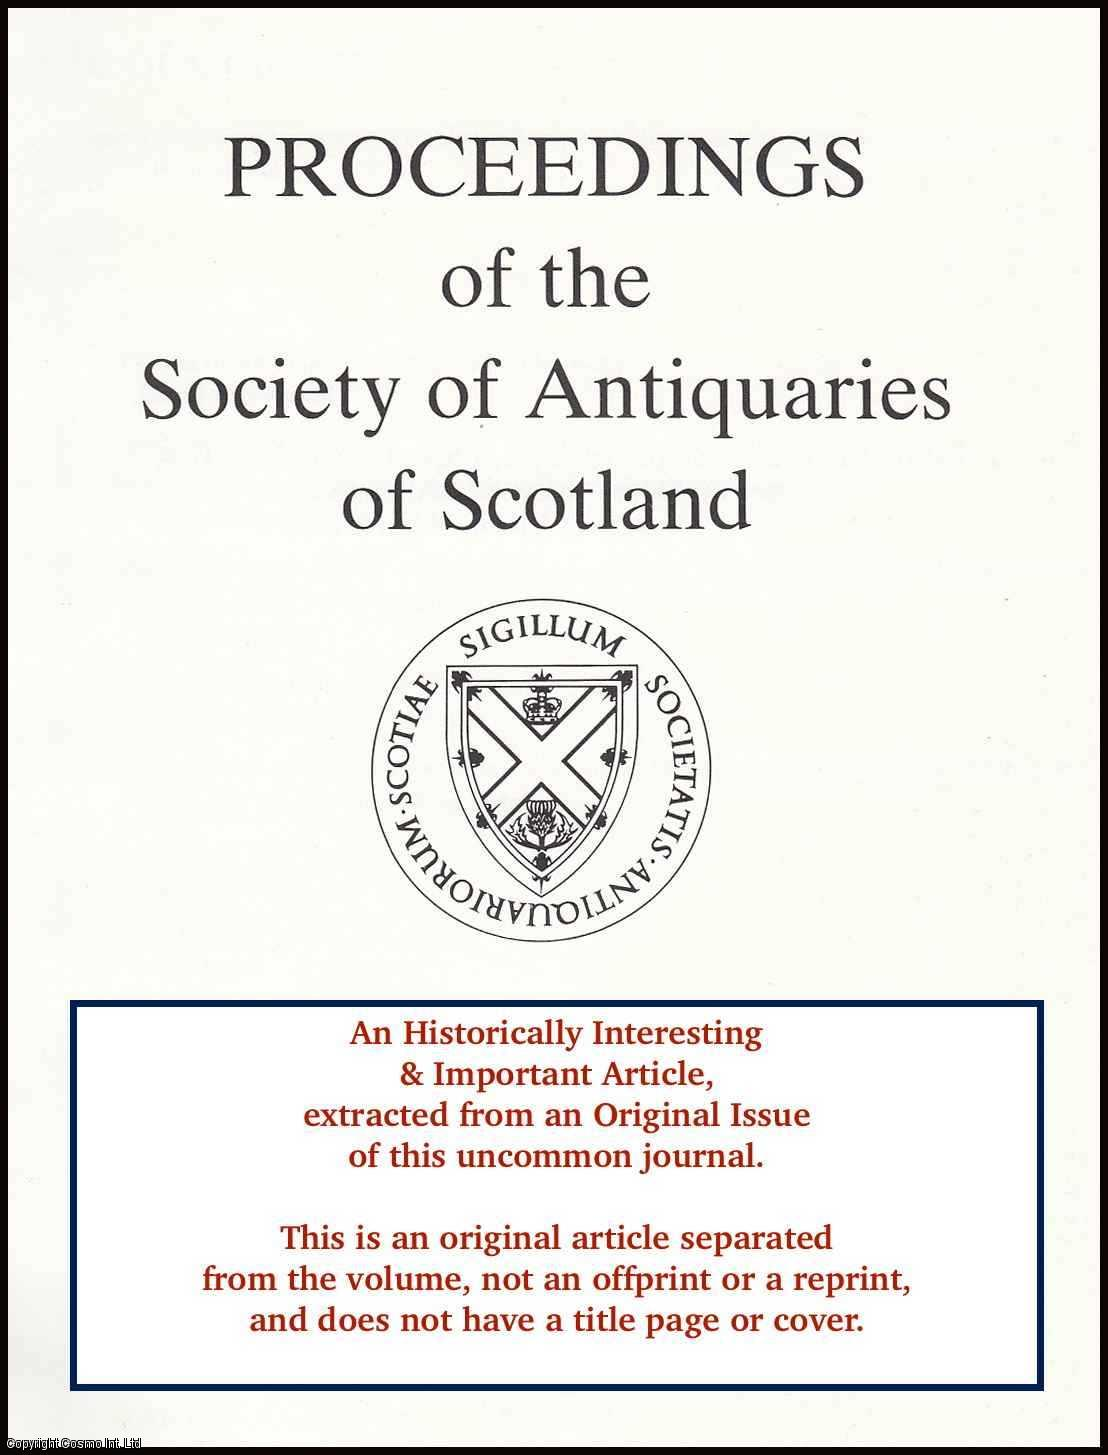 DORE & J. J. WILKES & L. ALLASON-JONES & J. C. N. COULSTON & L. J. GIDNEY & N. M. MCQ HOLMES & J. P. HUNTLEY & C. LUCAS & J. PRICE & R. TYLECOTE, J. N. - Excavations Directed by J. D. Leach and J. J. Wilkes on The Site of a Roman Fortress at Carpow, Perthshire, 1964-79. An original article from the Proceedings of the Society of Antiquaries of Scotland, 1999.